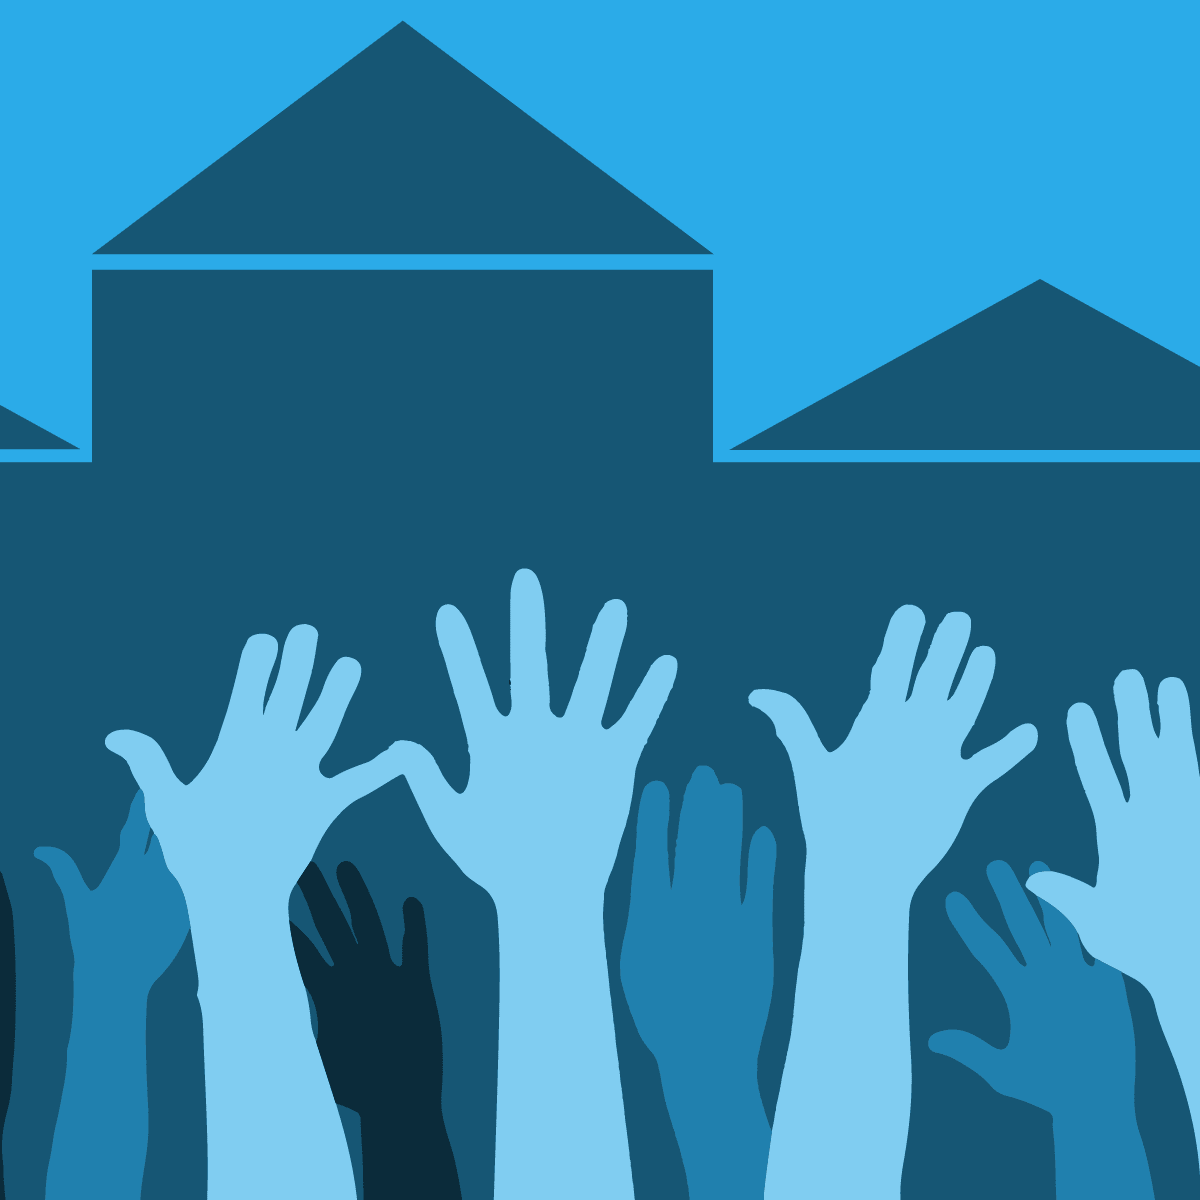 raised hands by municipal buildings